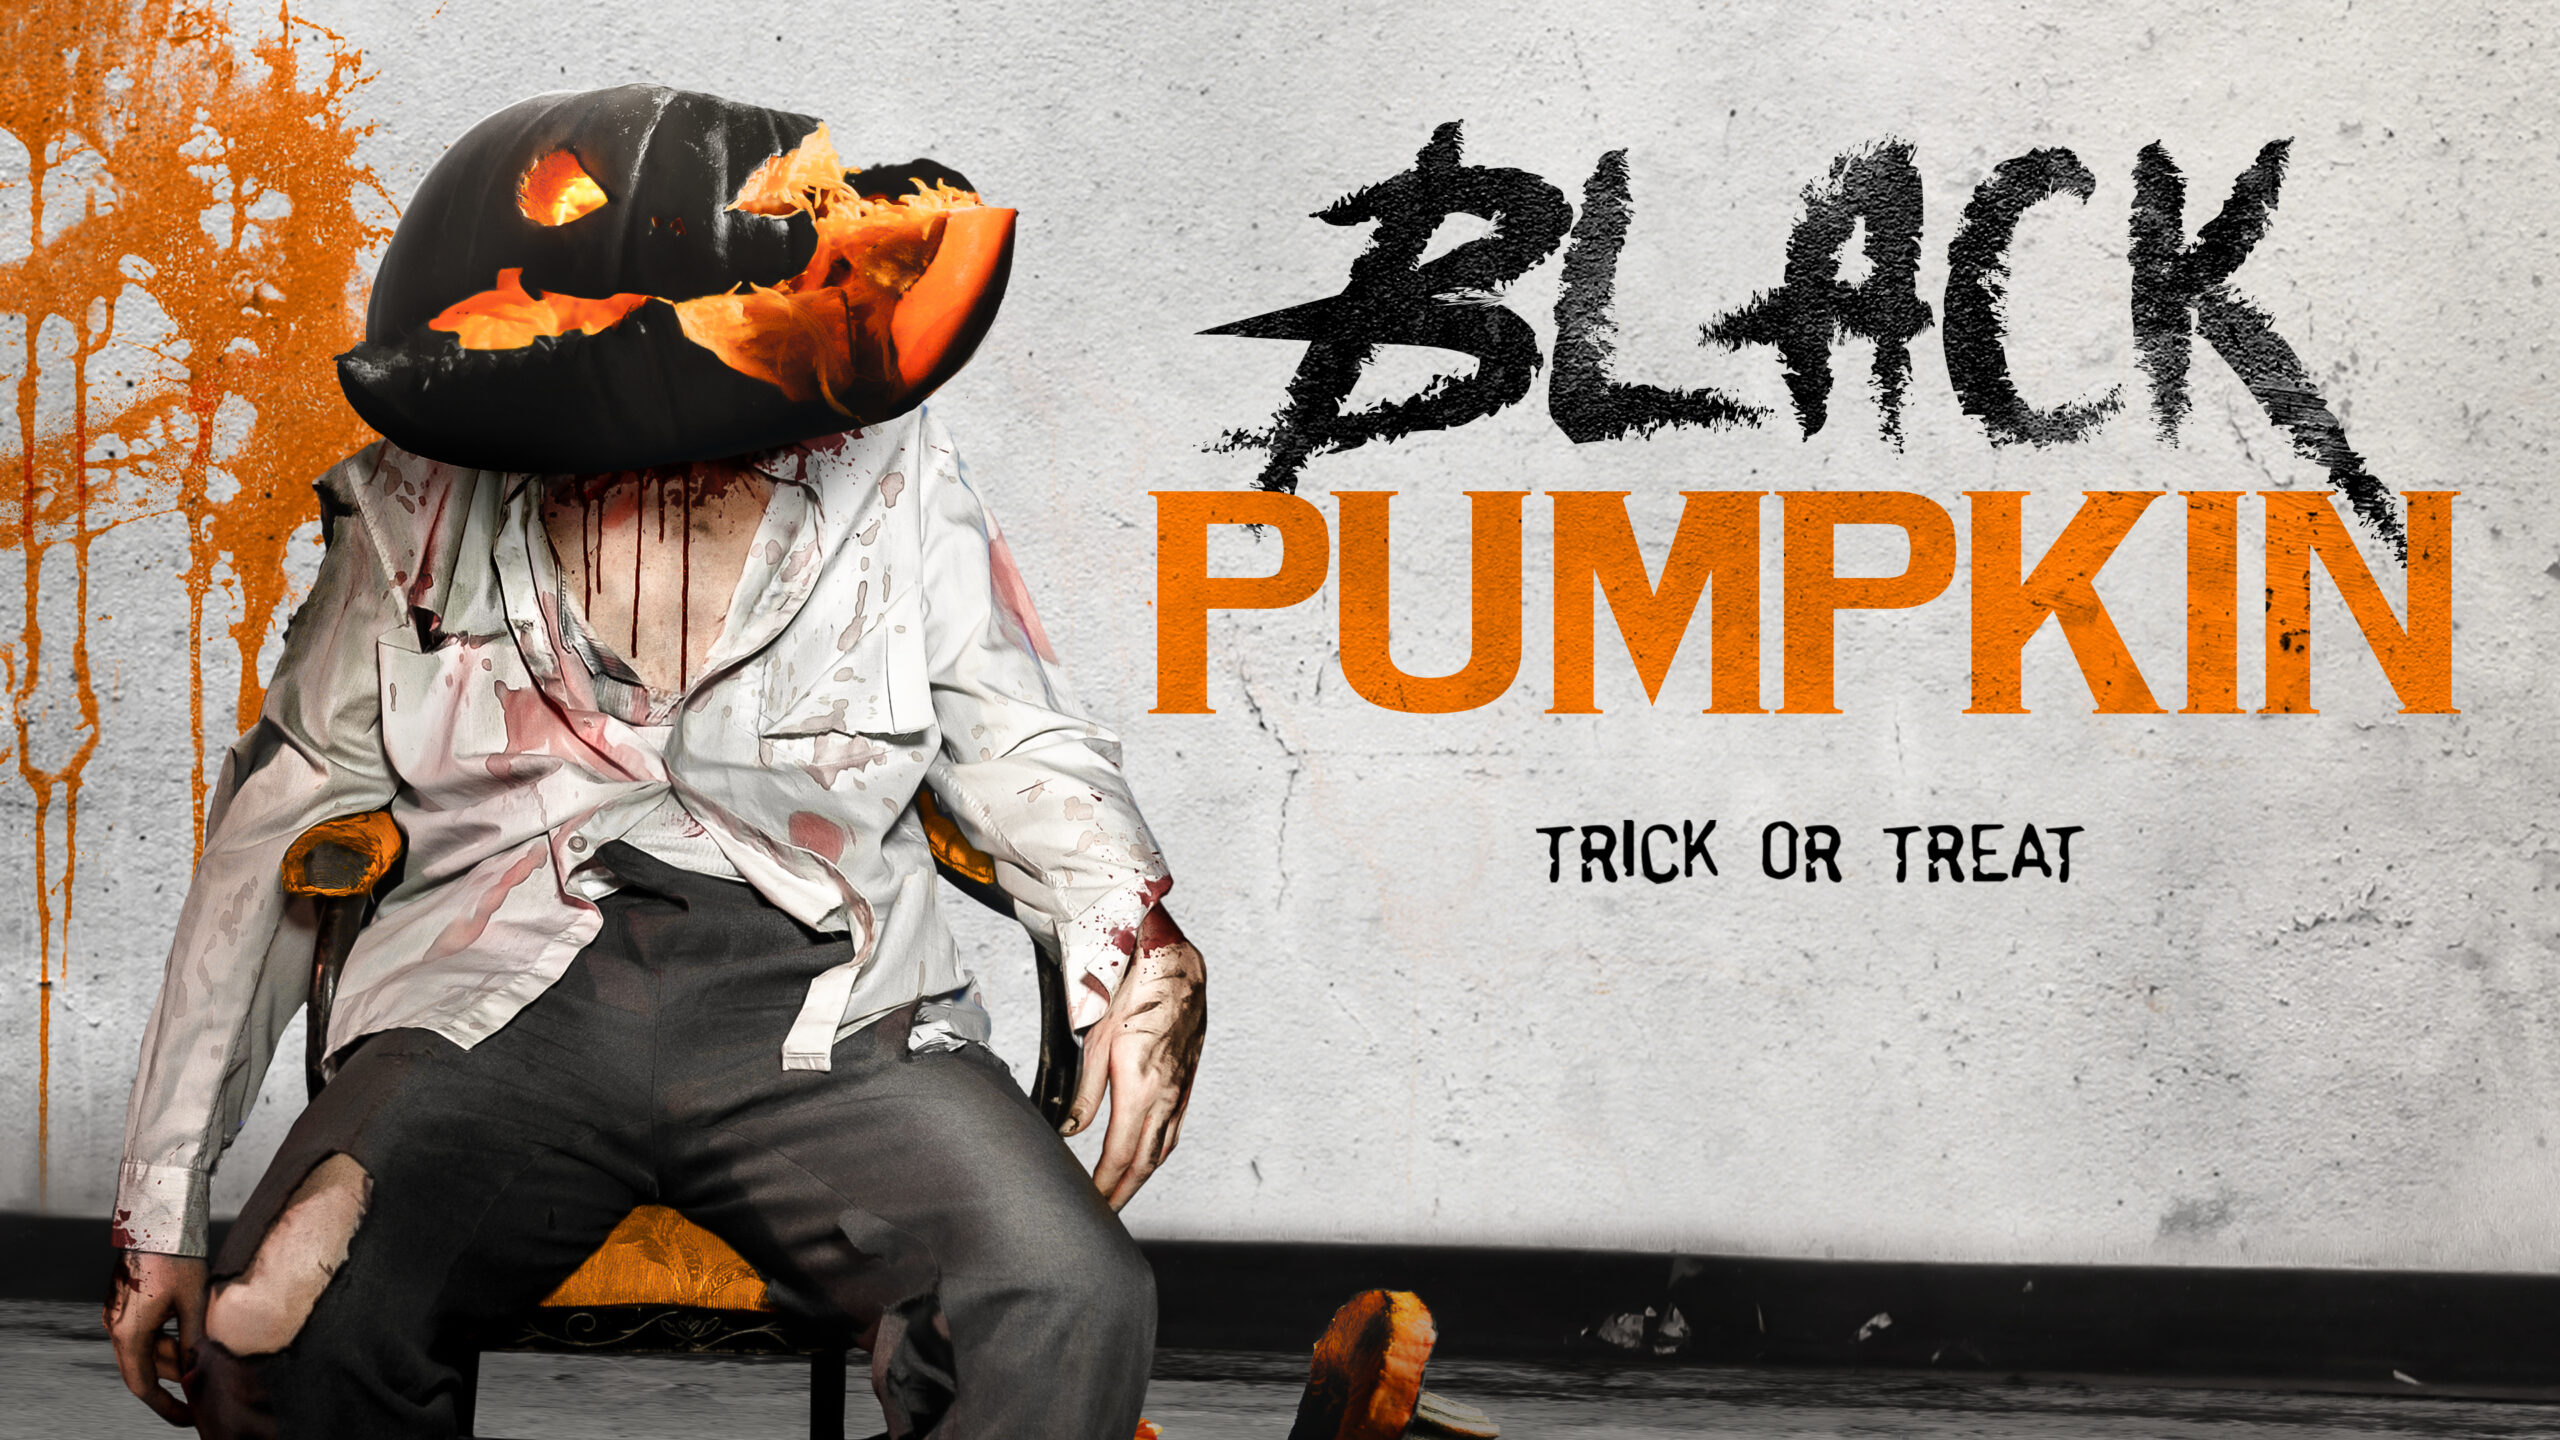 New trailer and poster released for BLACK PUMPKIN which is coming to DIGITAL AND DVD DECEMBER 8th 2020